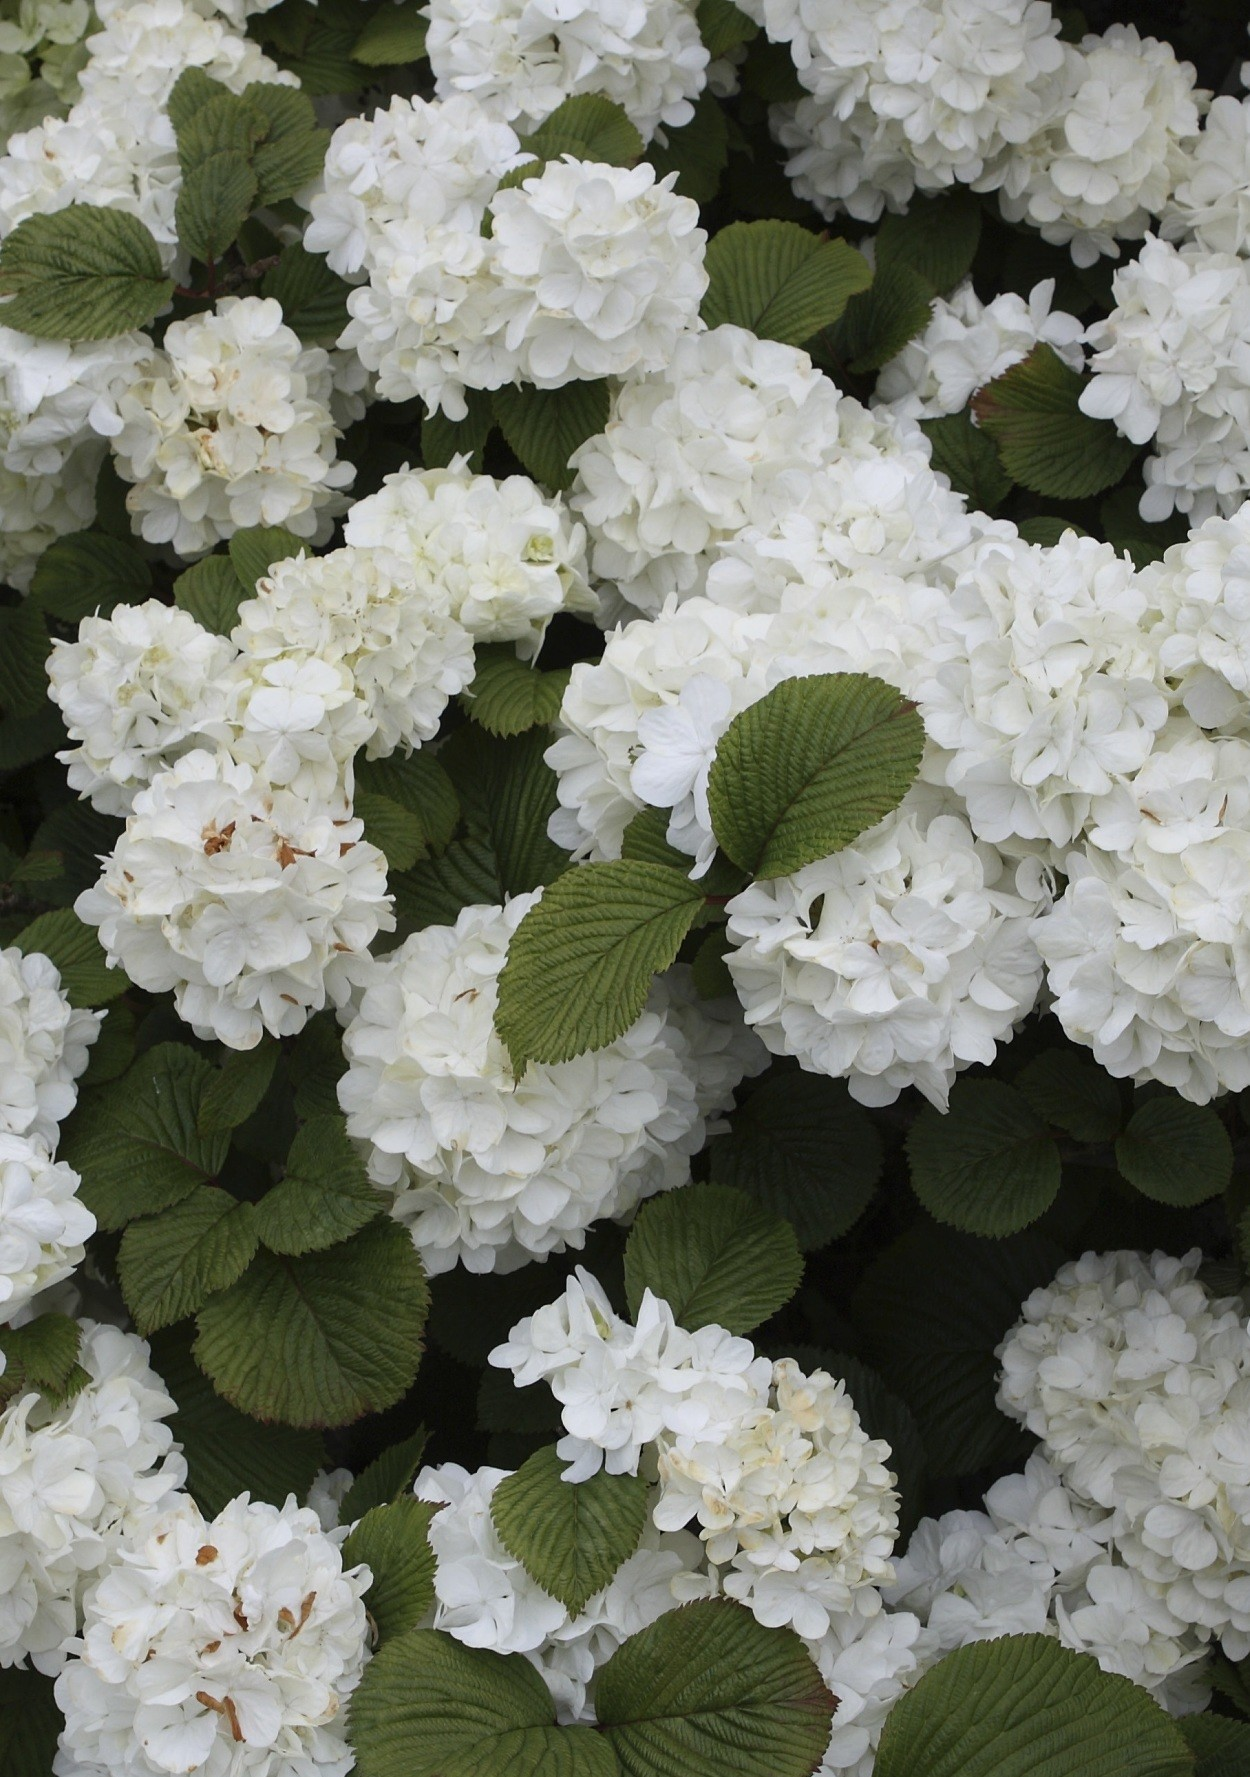 7 show-stopping flowering shrubs